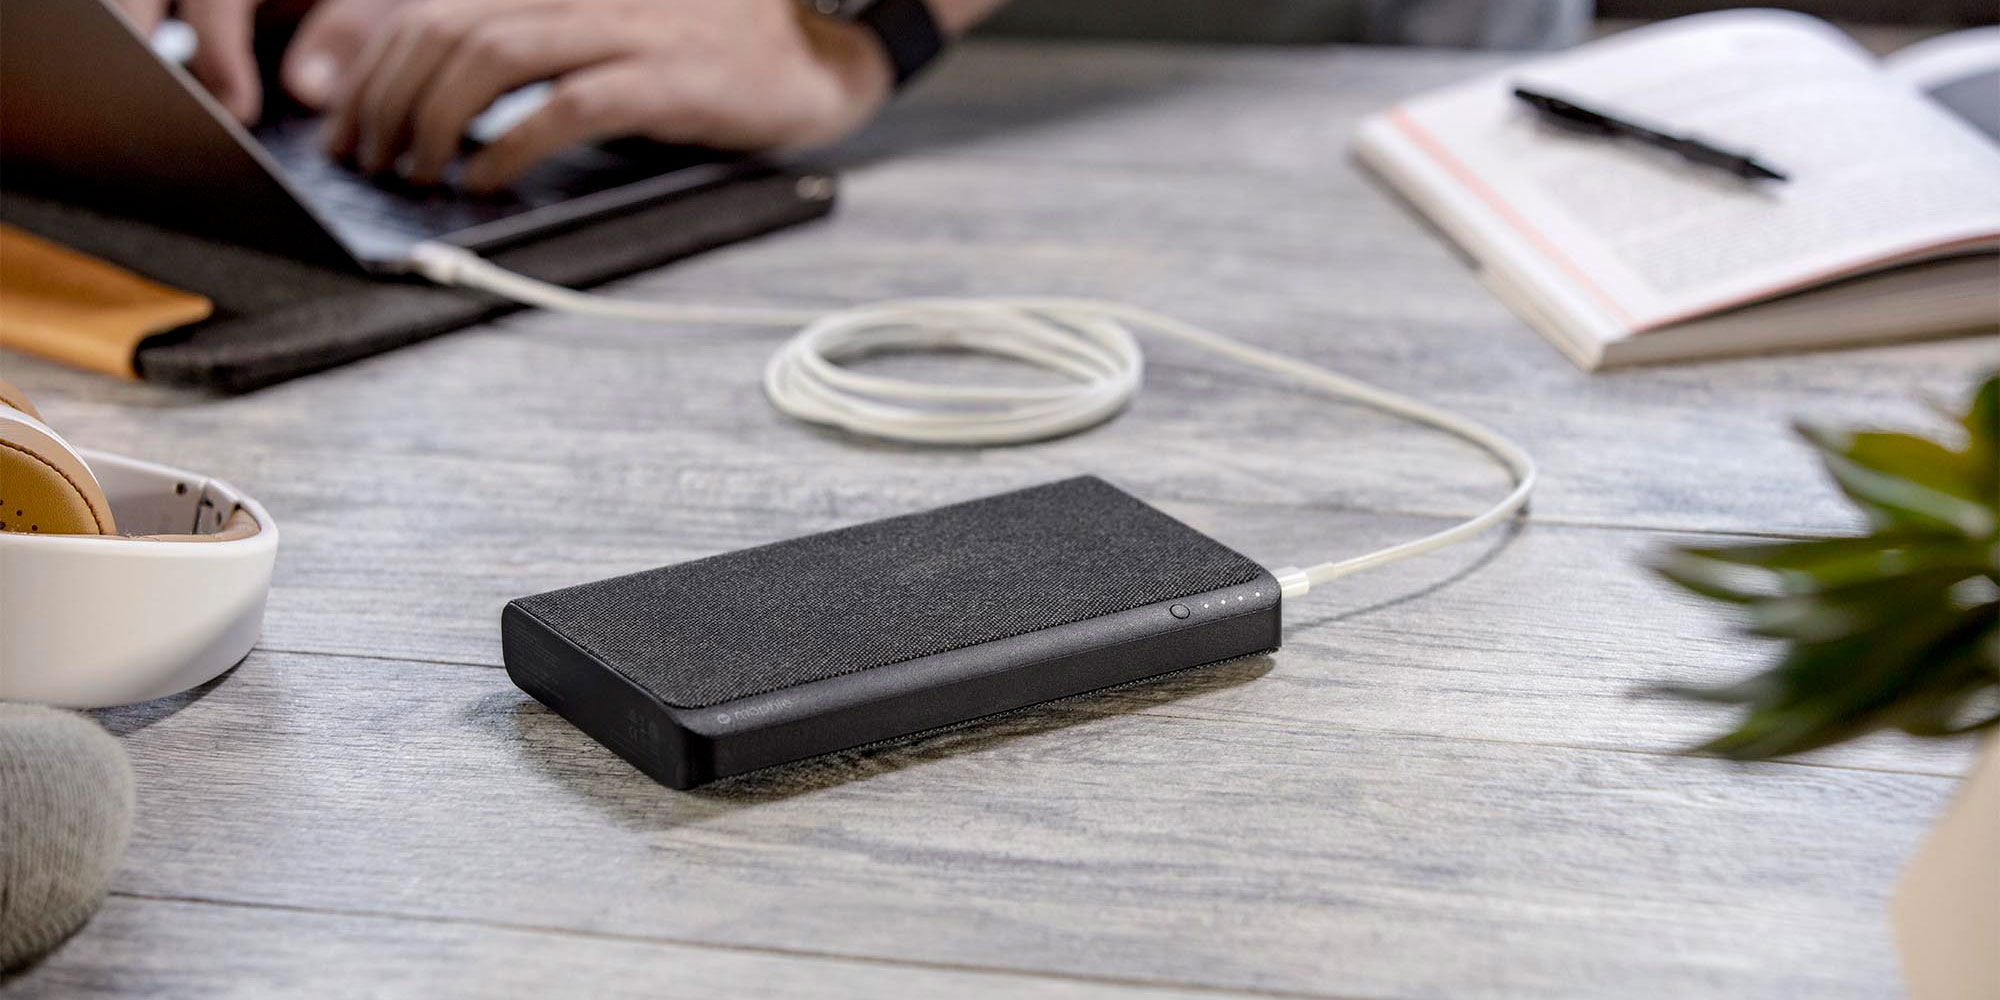 mophie powerstation USB-C 3XL packs 45W USB-C PD, more - 9to5Toys